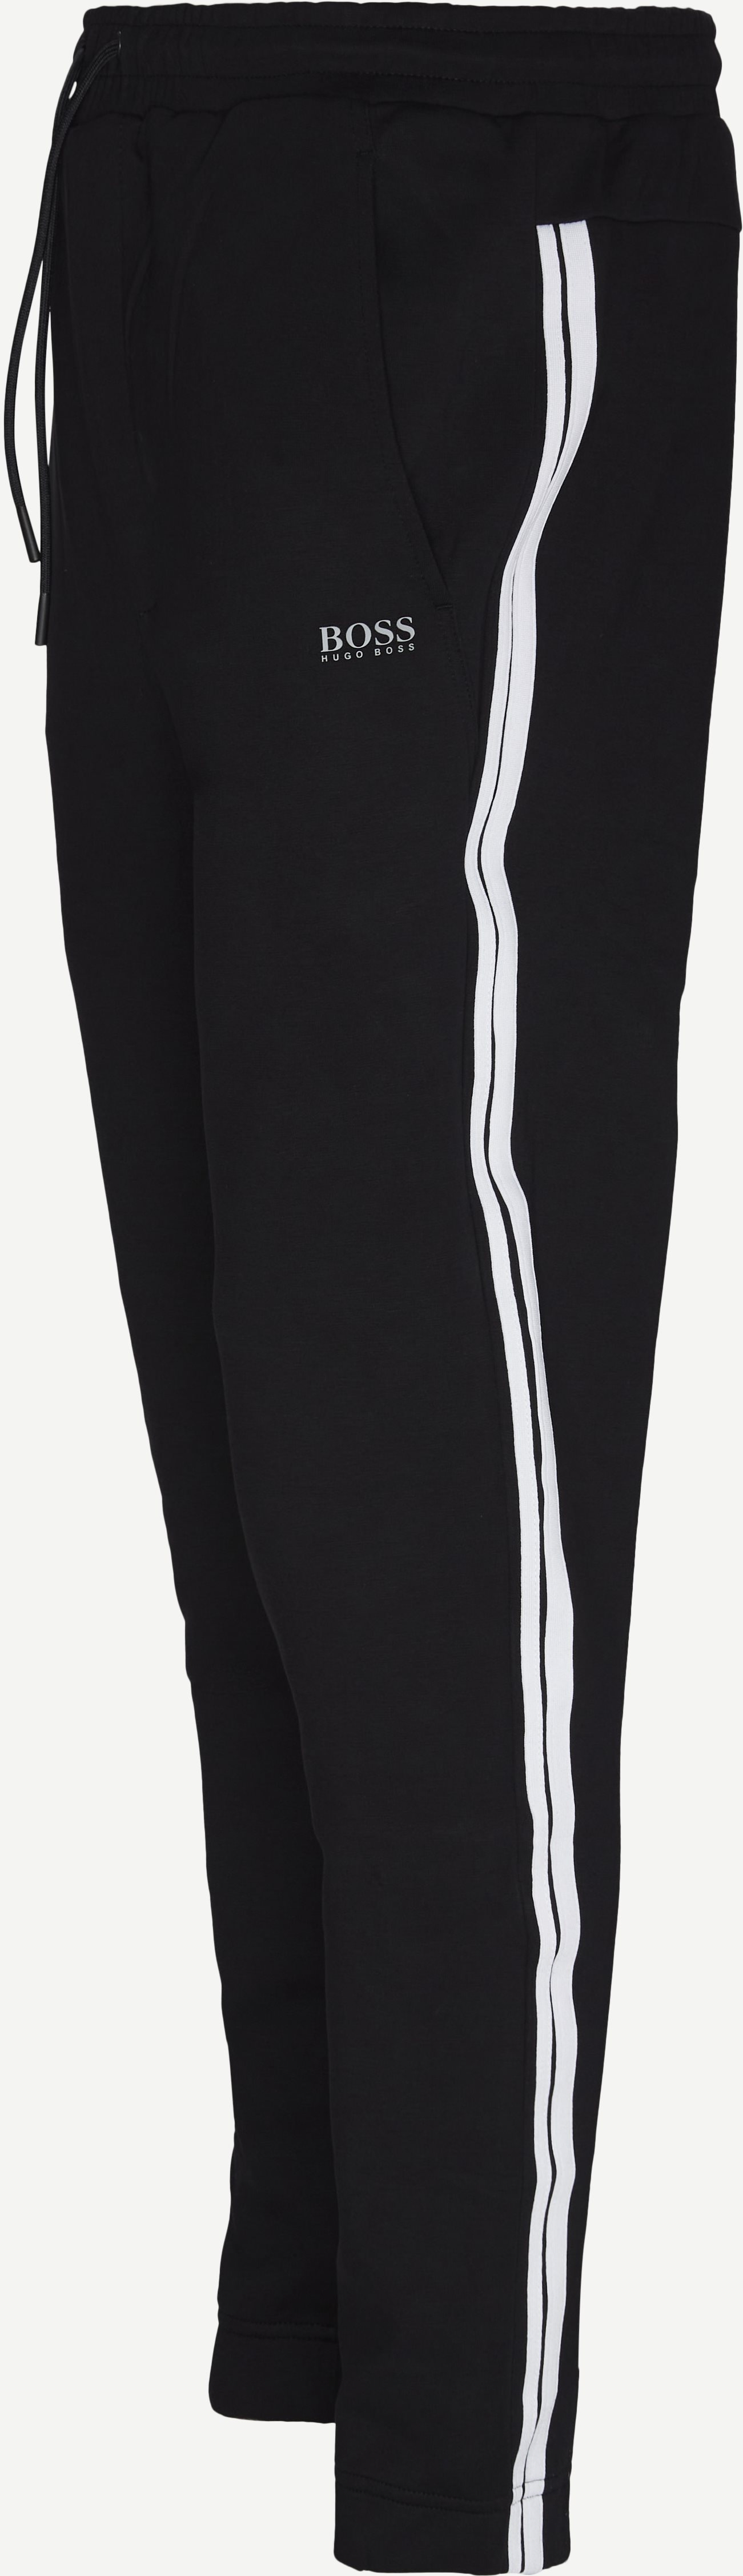 Tracksuit Set 2 Track Pants - Trousers - Regular - Black